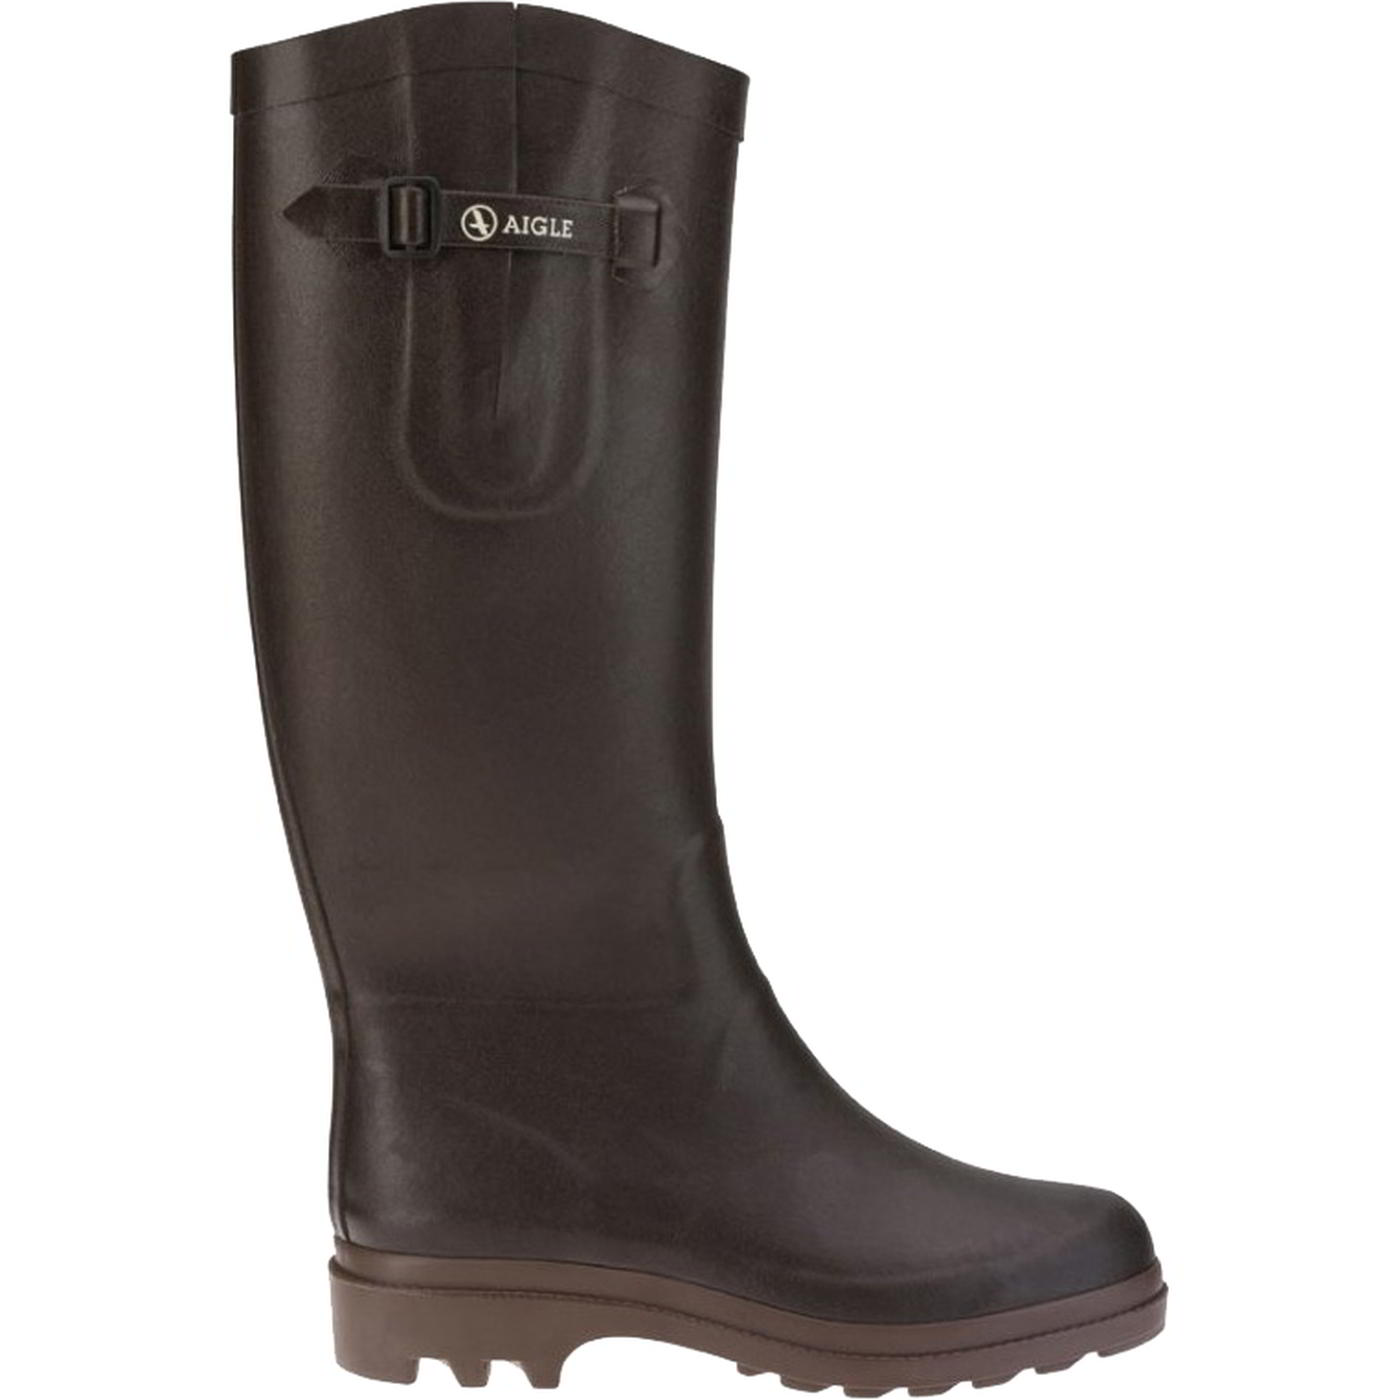 Muck Boots Wear Womens Ladies Short Wellington Riding Chelsea Wellies Size 5-8